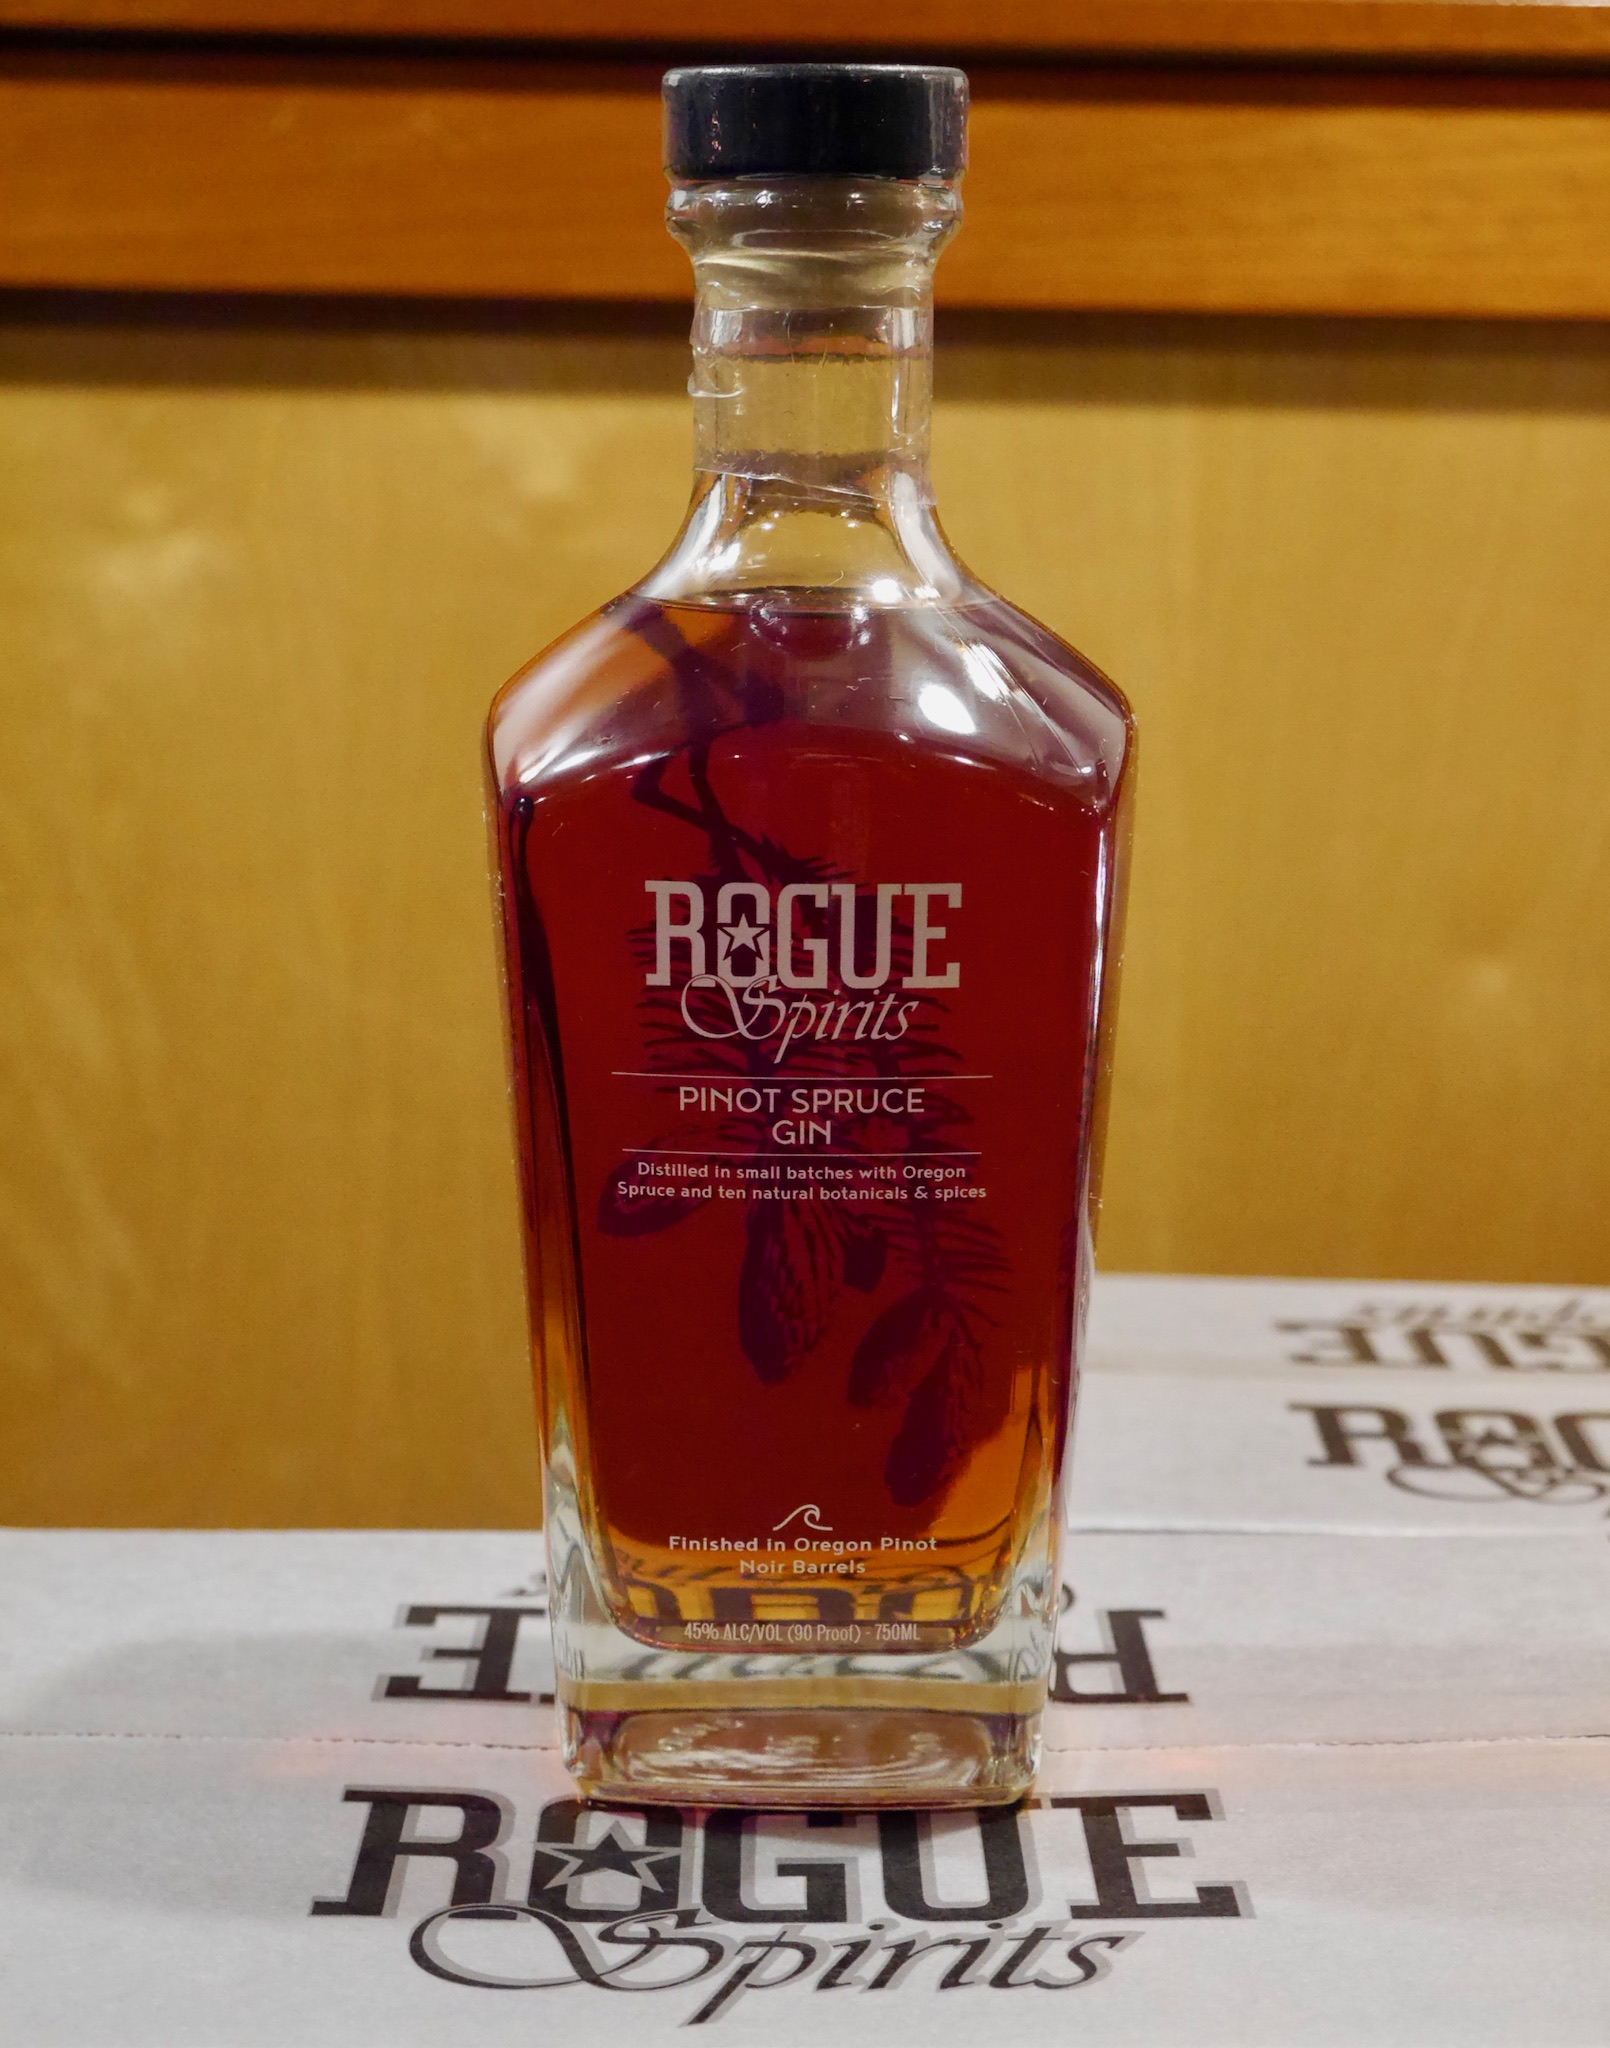 Rogue Spirits new Pinot Spruce Gin. (photo by Cat Stelzer)